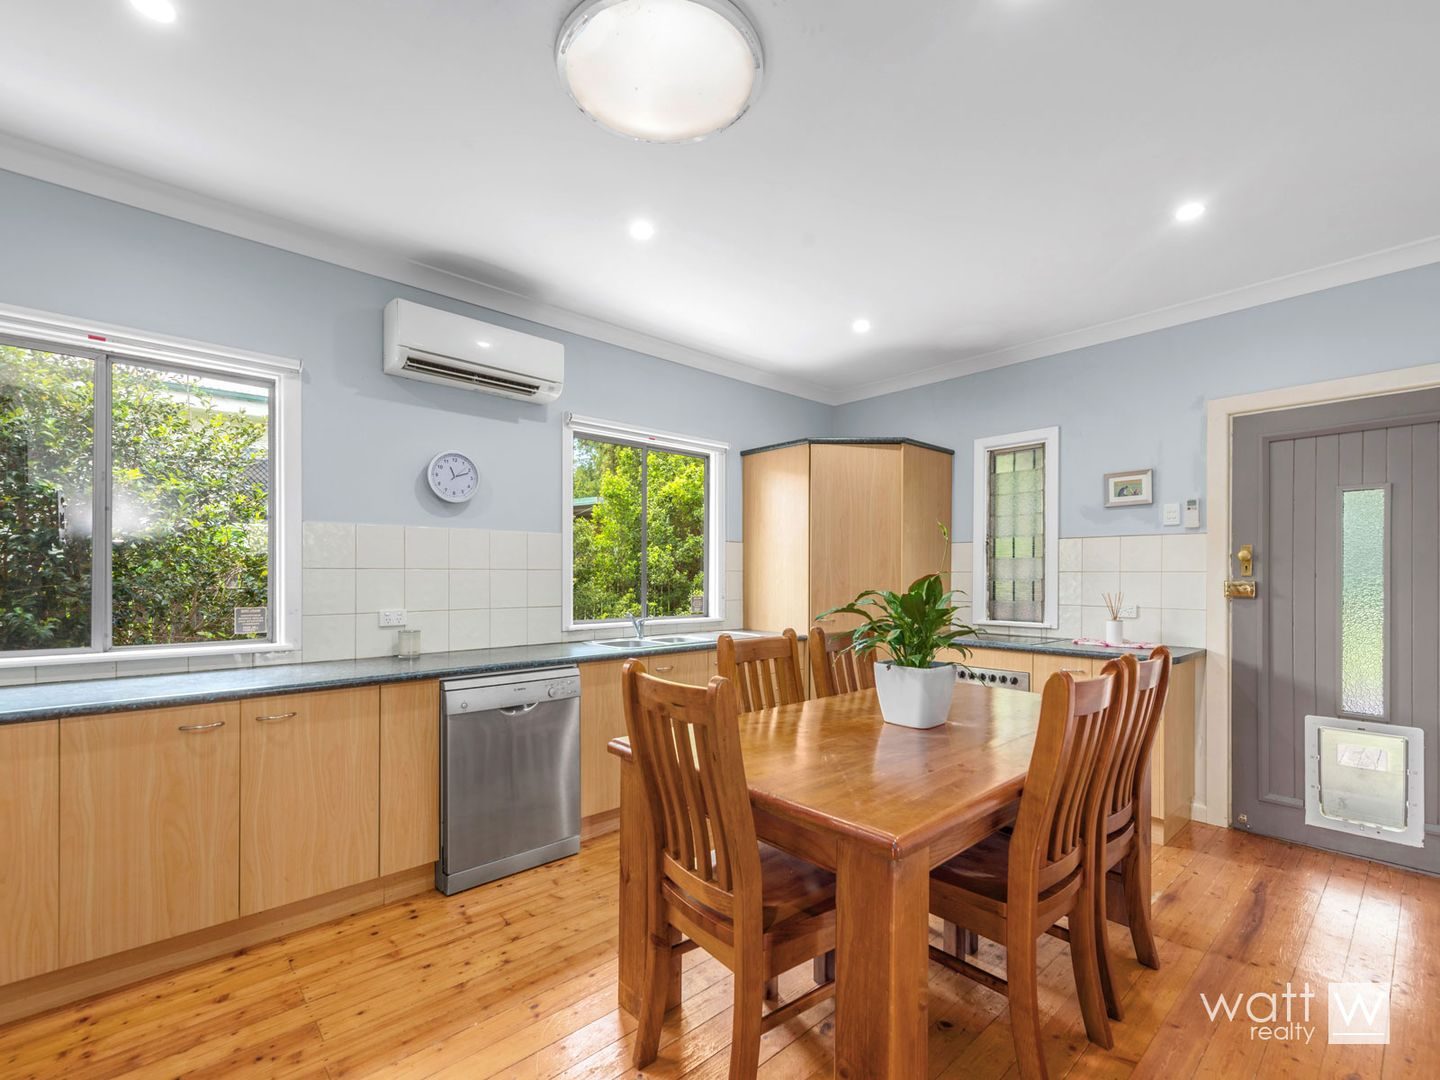 68 Crowley Street, Zillmere QLD 4034, Image 1